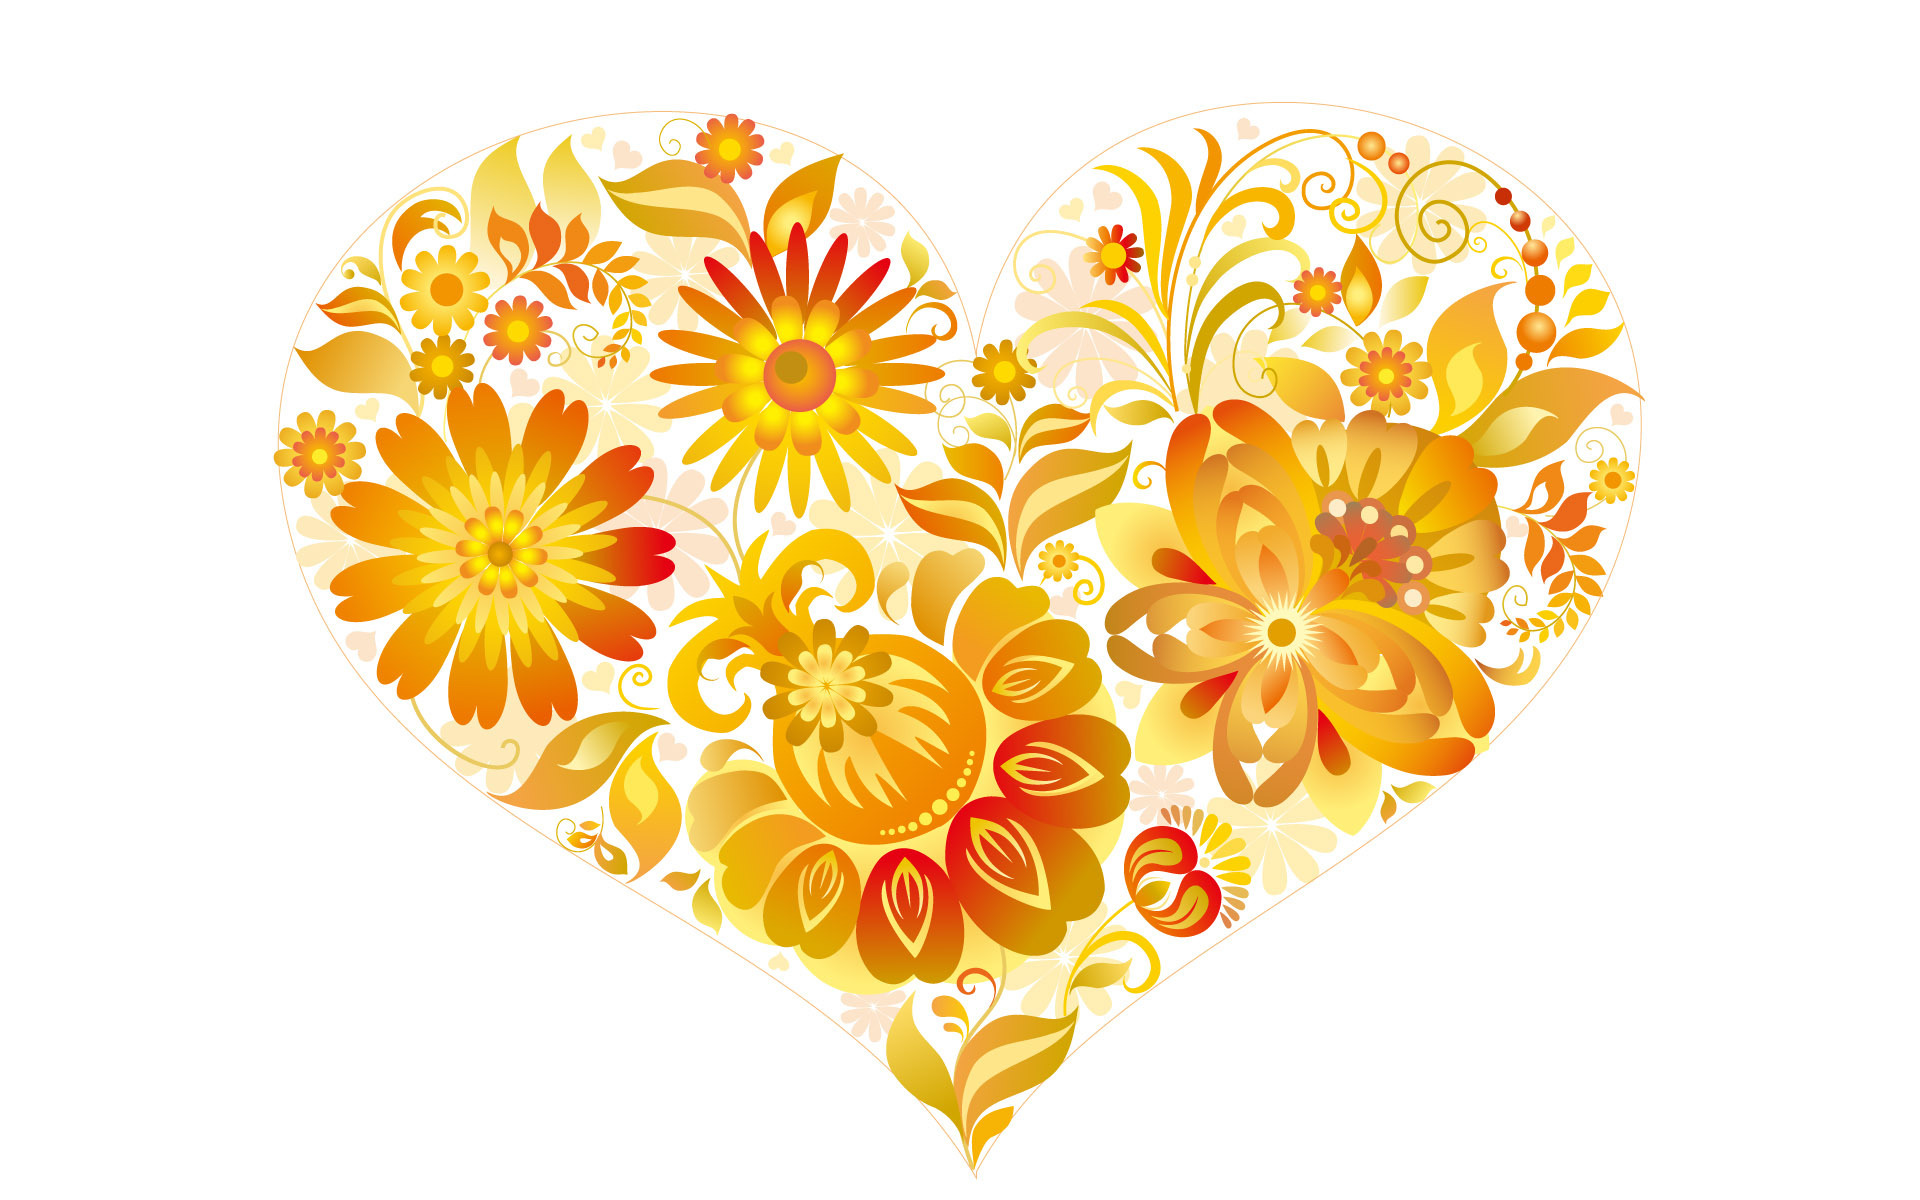 Abstract Wallpaper Images Of Love Flowers Wallpaper